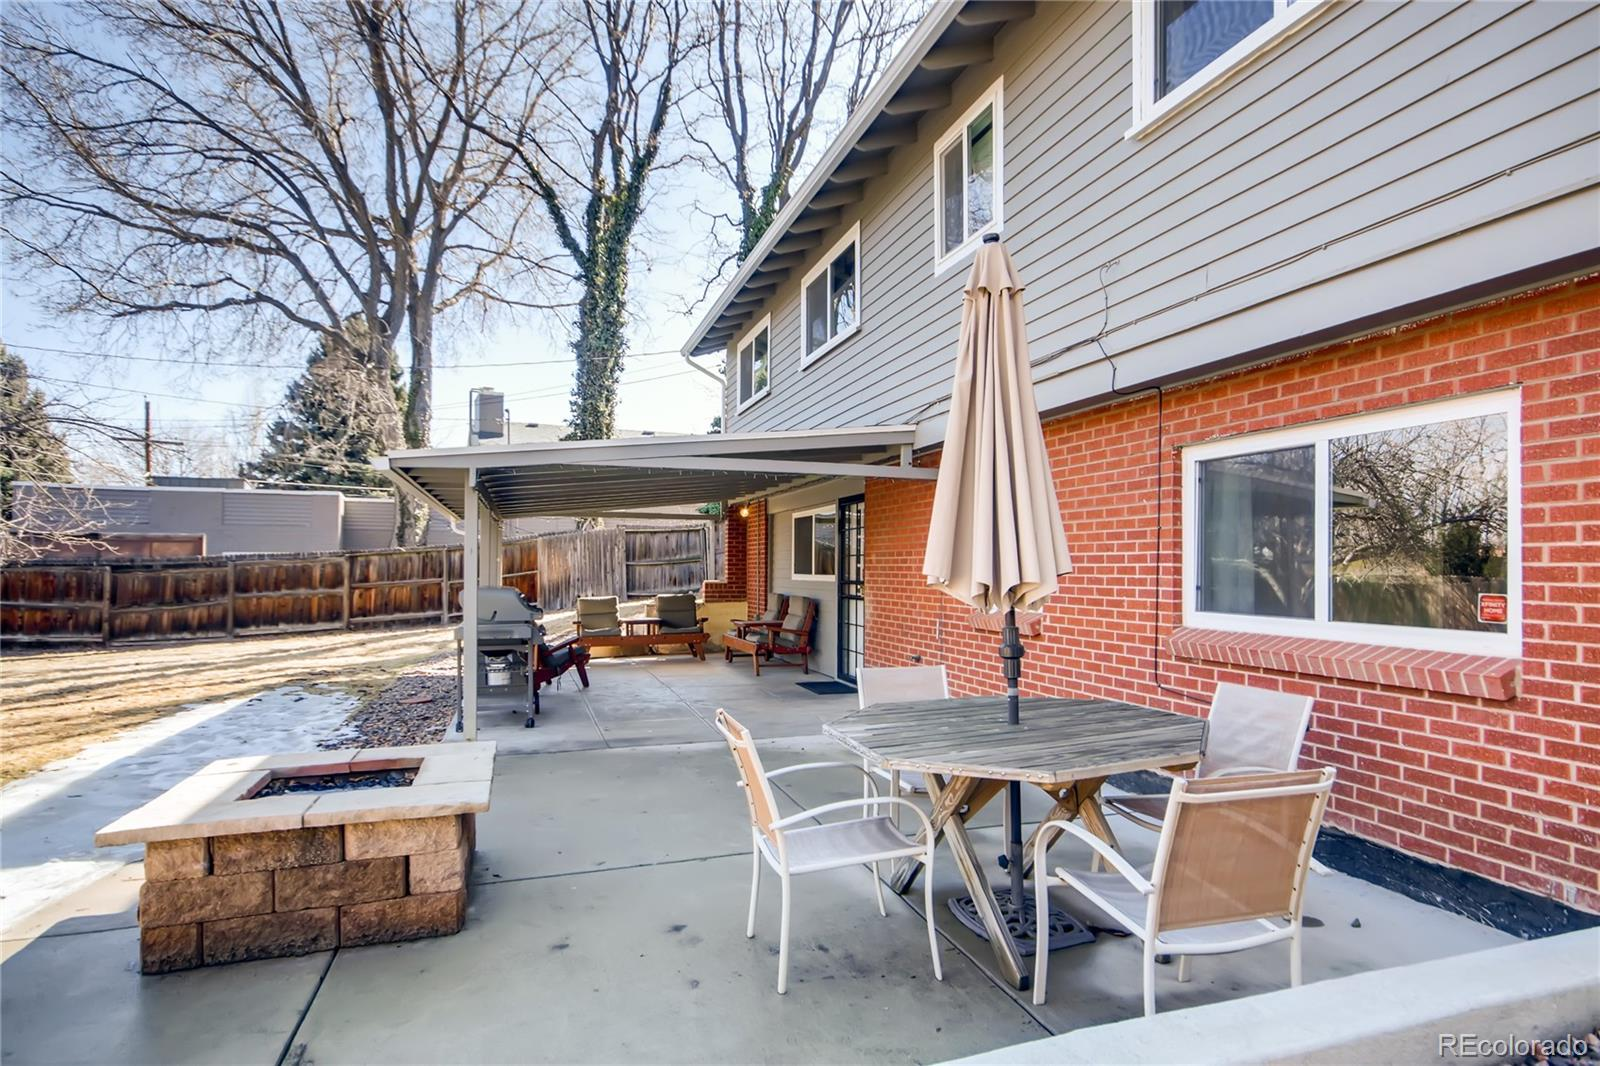 MLS# 9197299 - 28 - 10511 W 22nd Place, Lakewood, CO 80215